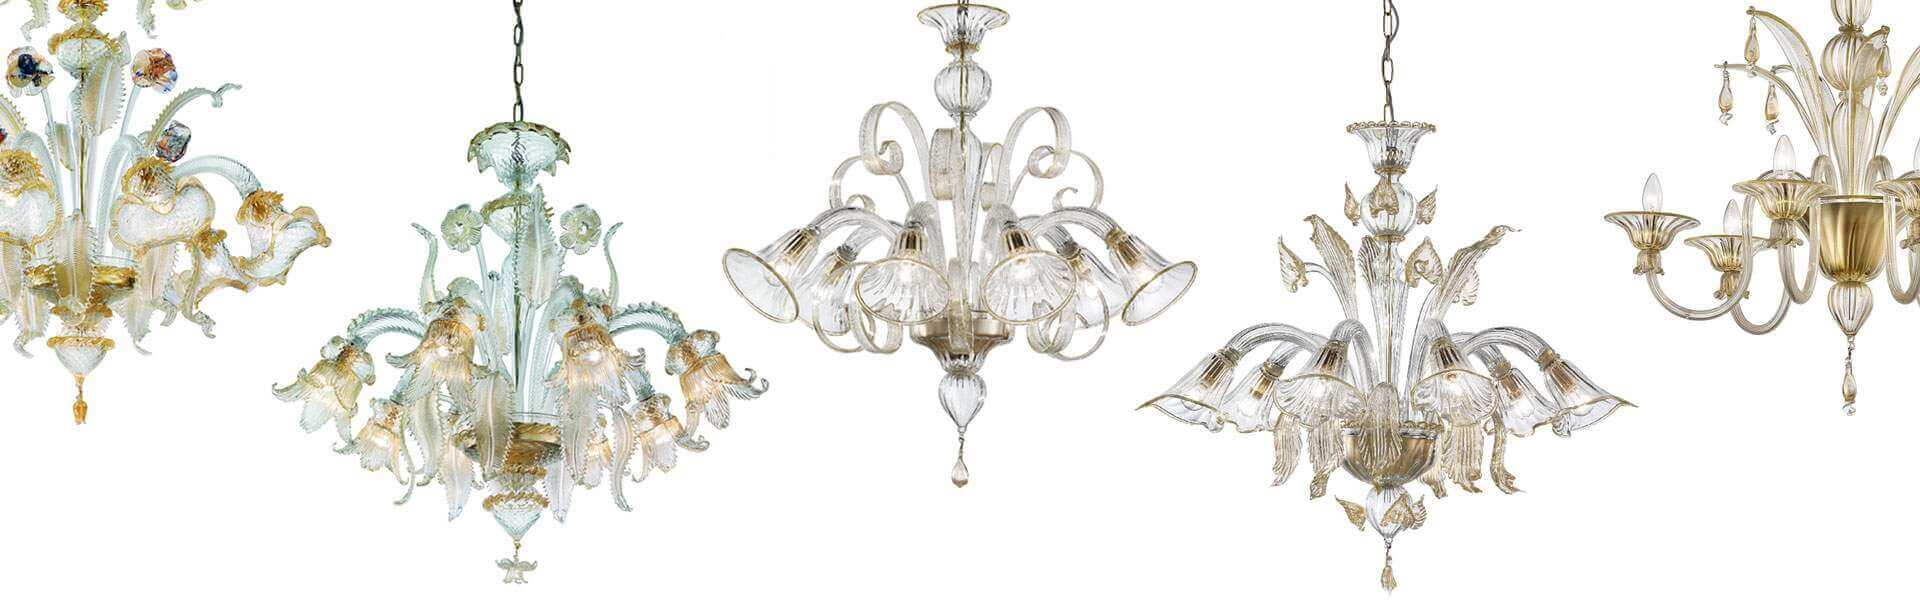 murano chandeliers murano glass chandeliers for sale from italy aloadofball Gallery